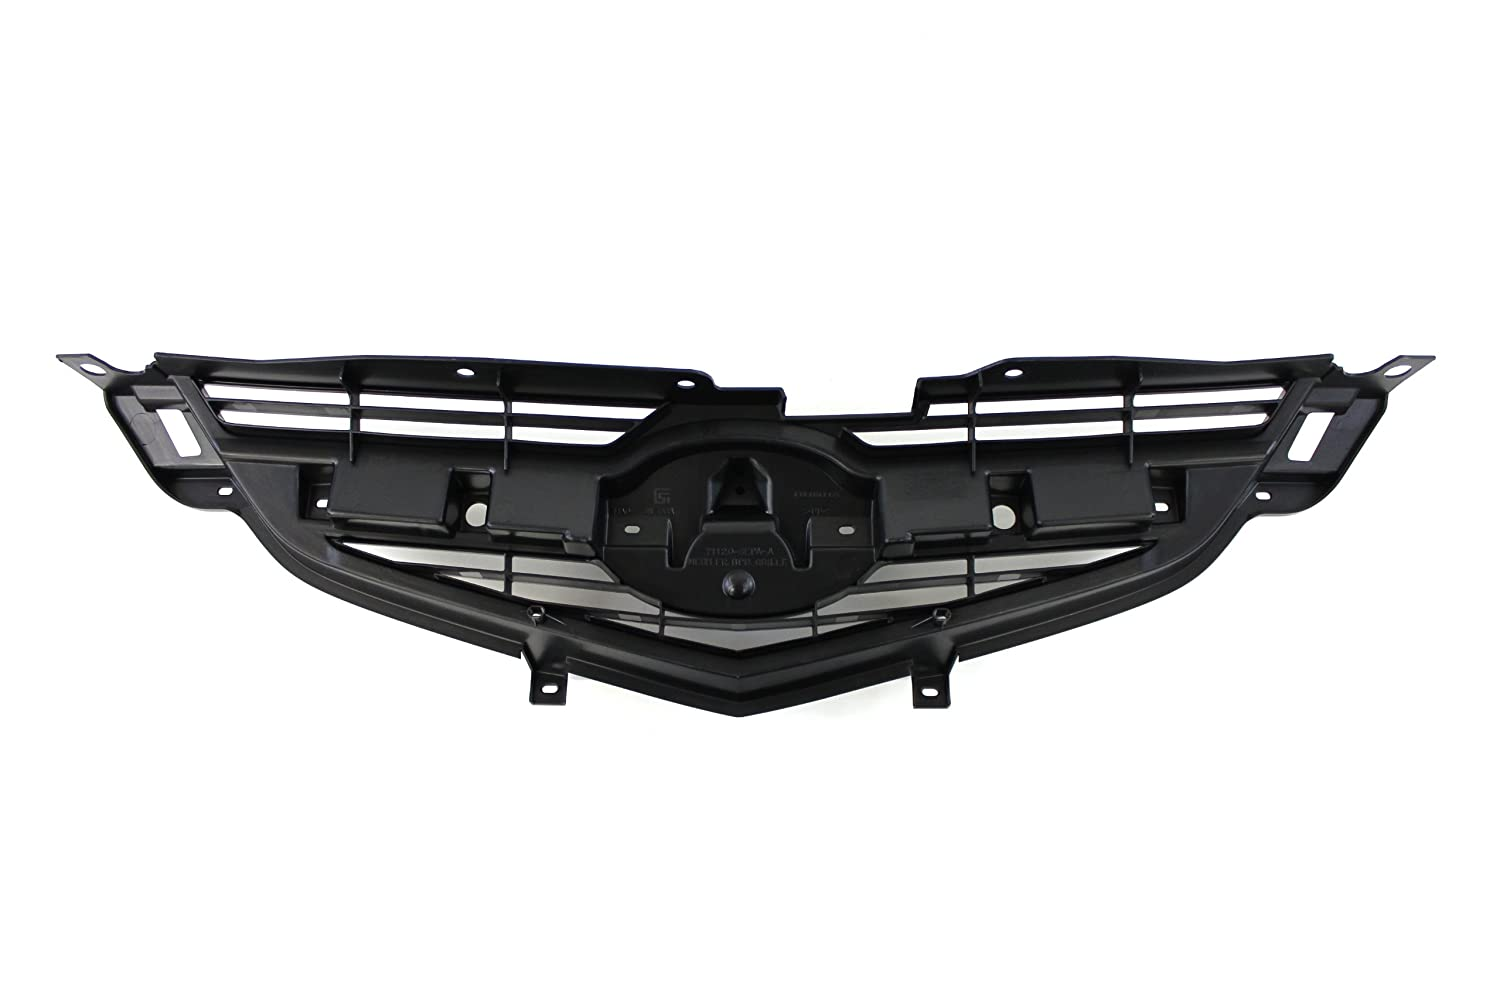 Genuine Acura Parts 71120-SEP-A00 Grille Assembly